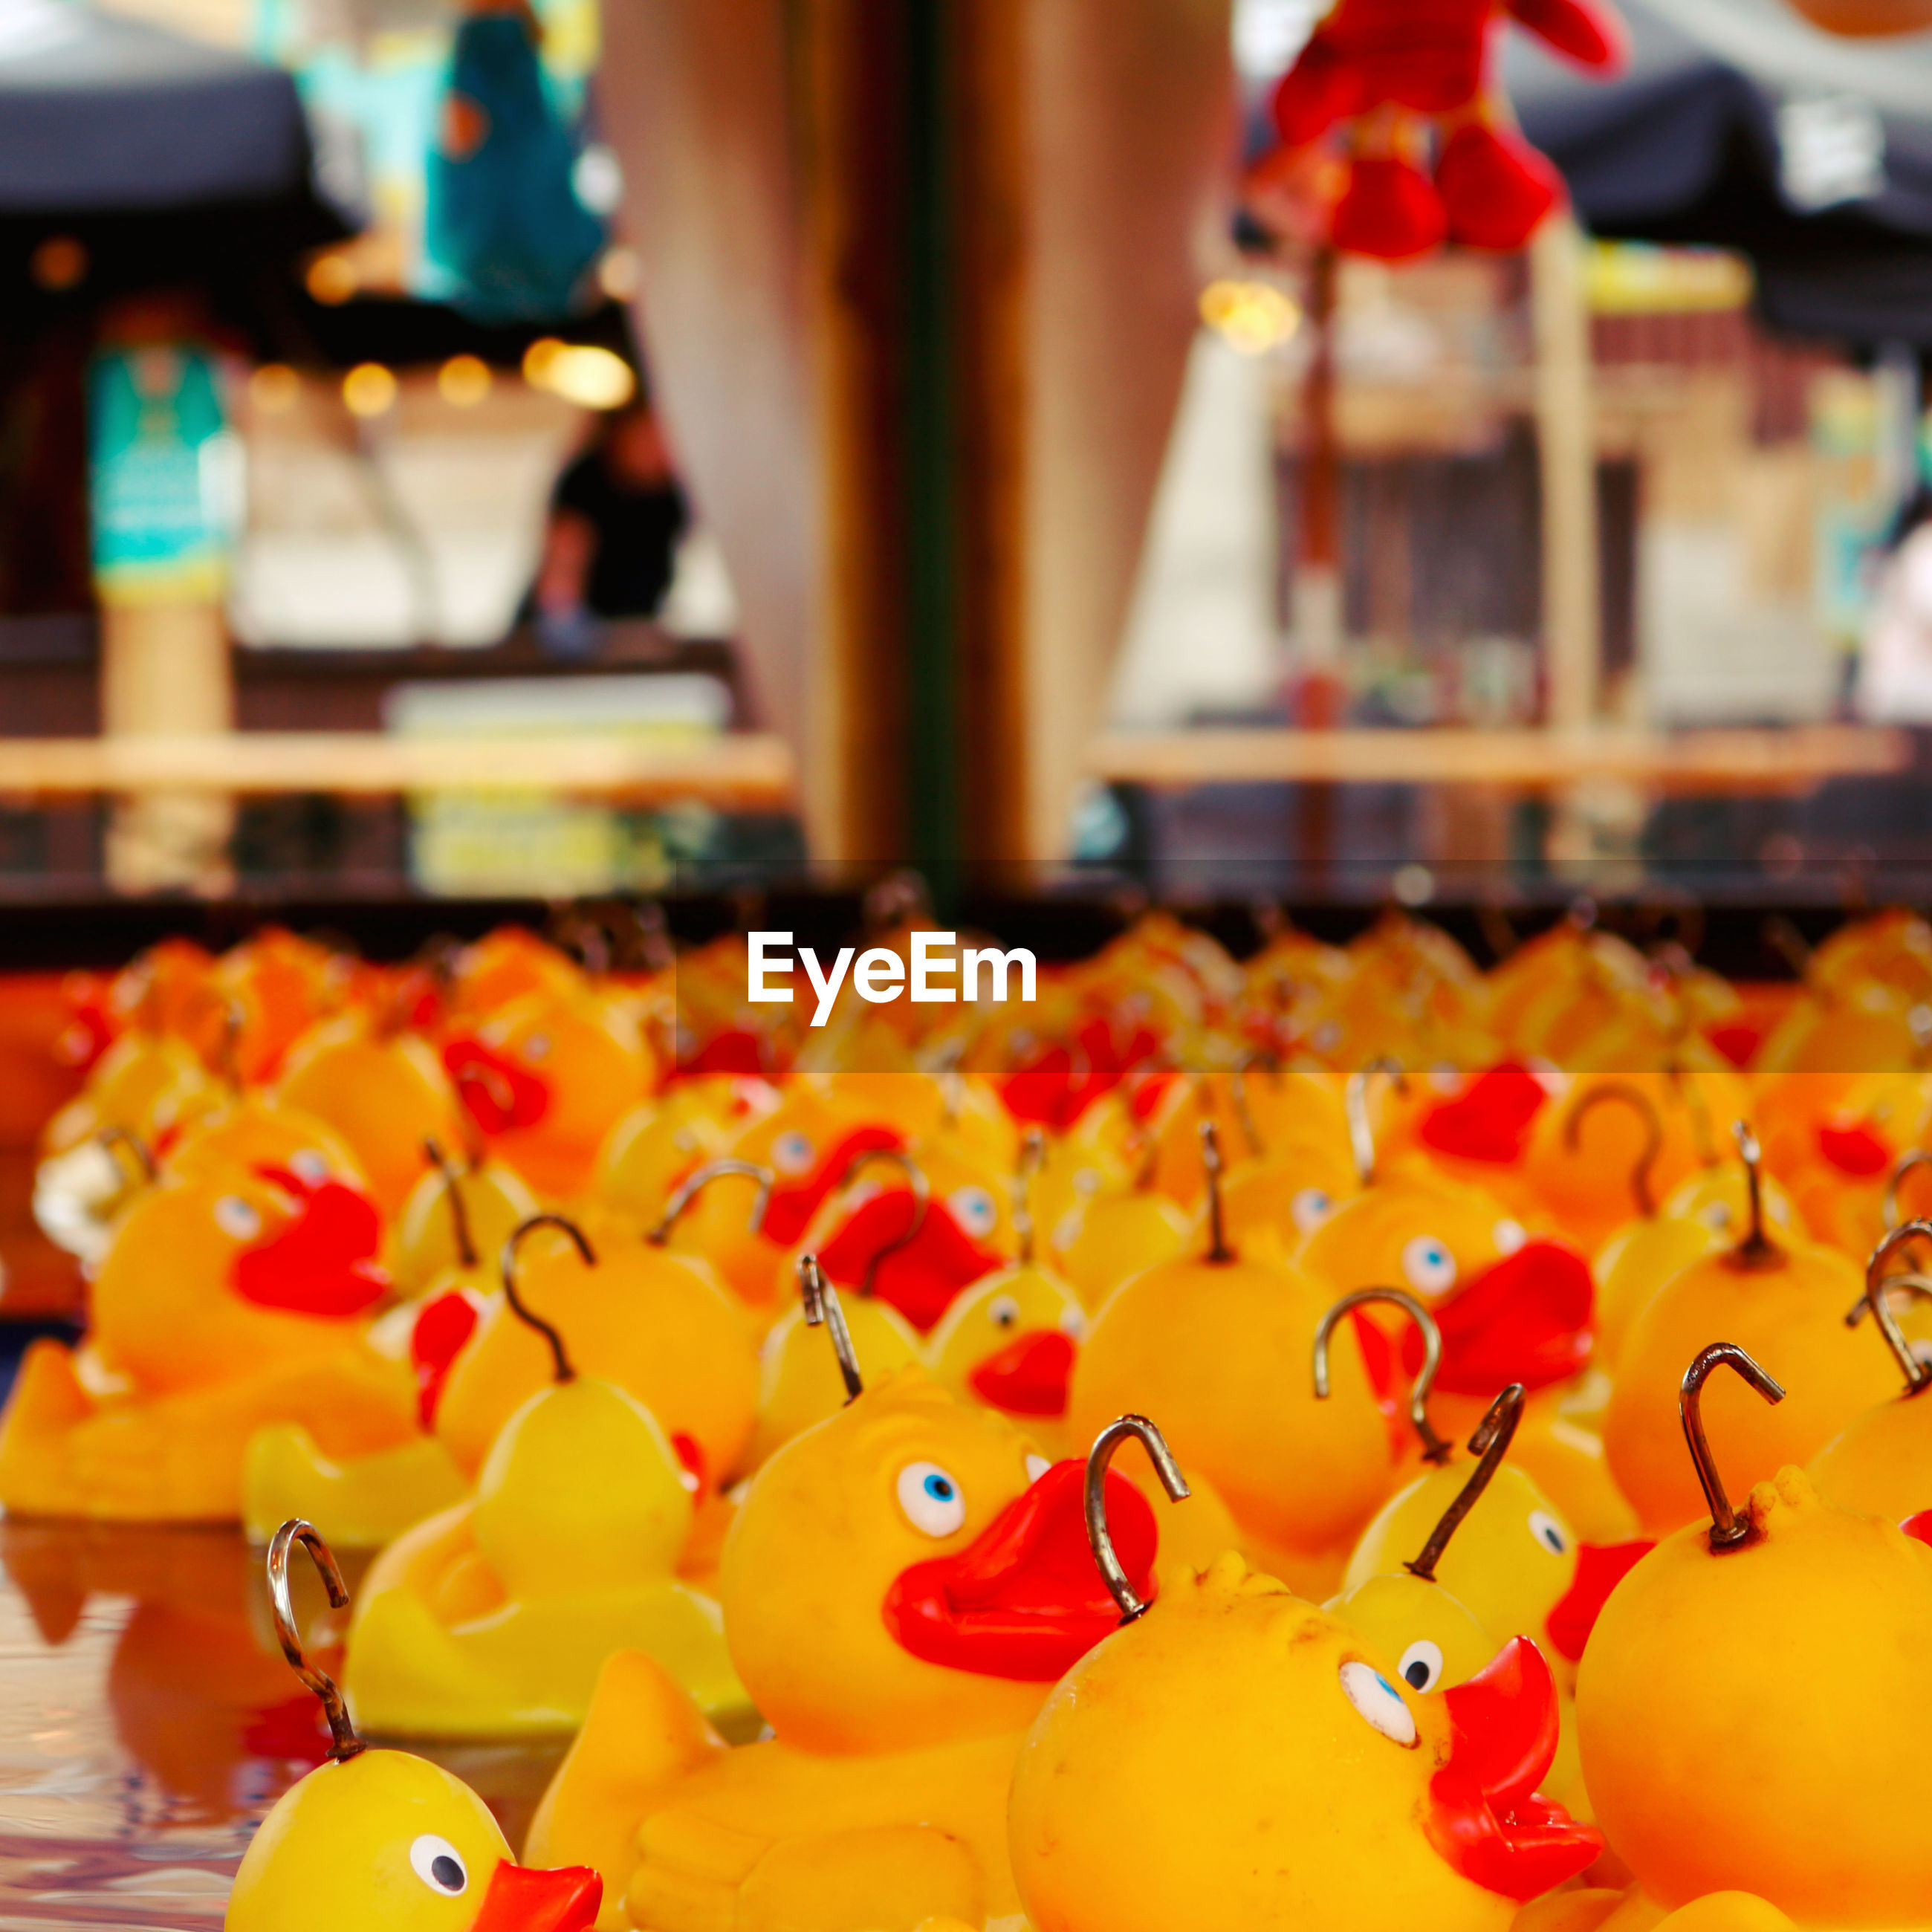 Toy ducks with hooks at amusement park